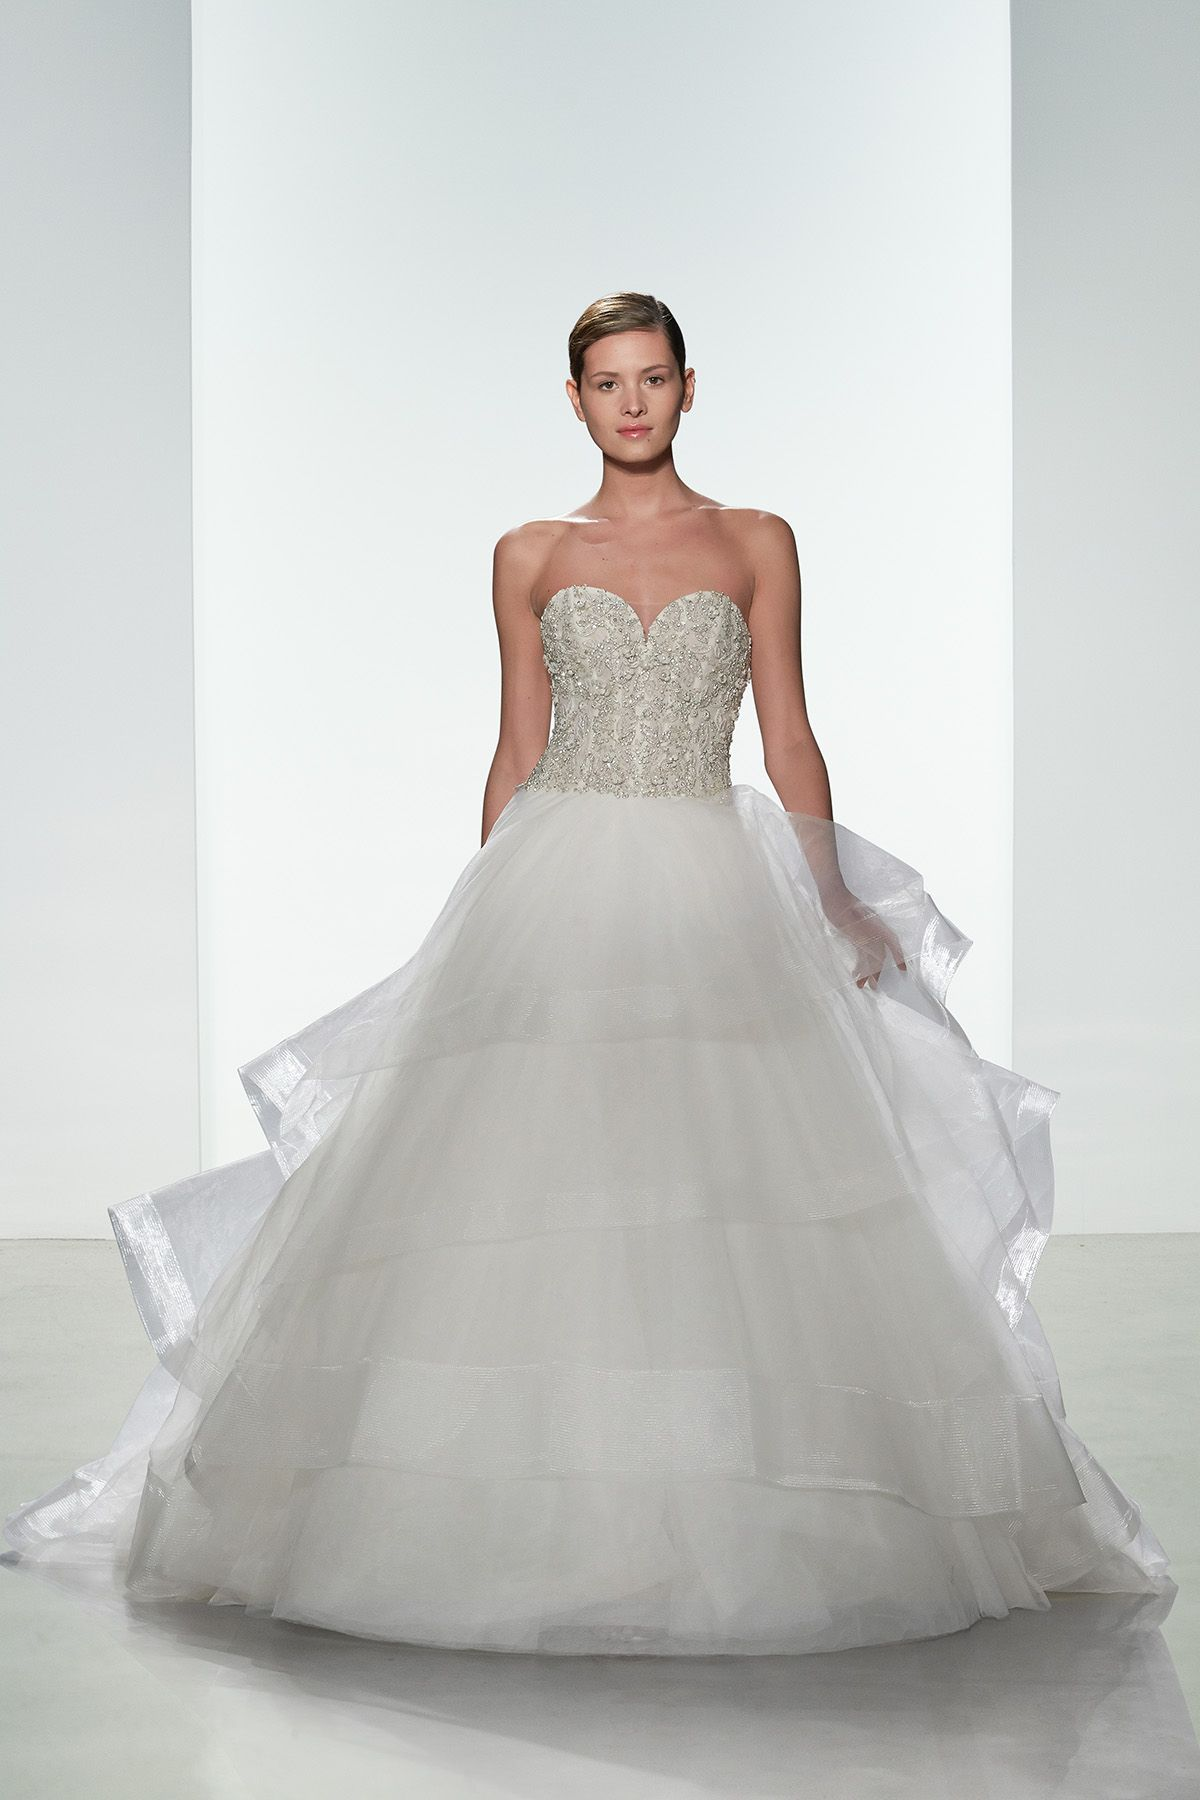 Dress for wedding party in winter  Kenneth Pool Rina  Wedding Dresses  Pinterest  Wedding dress and